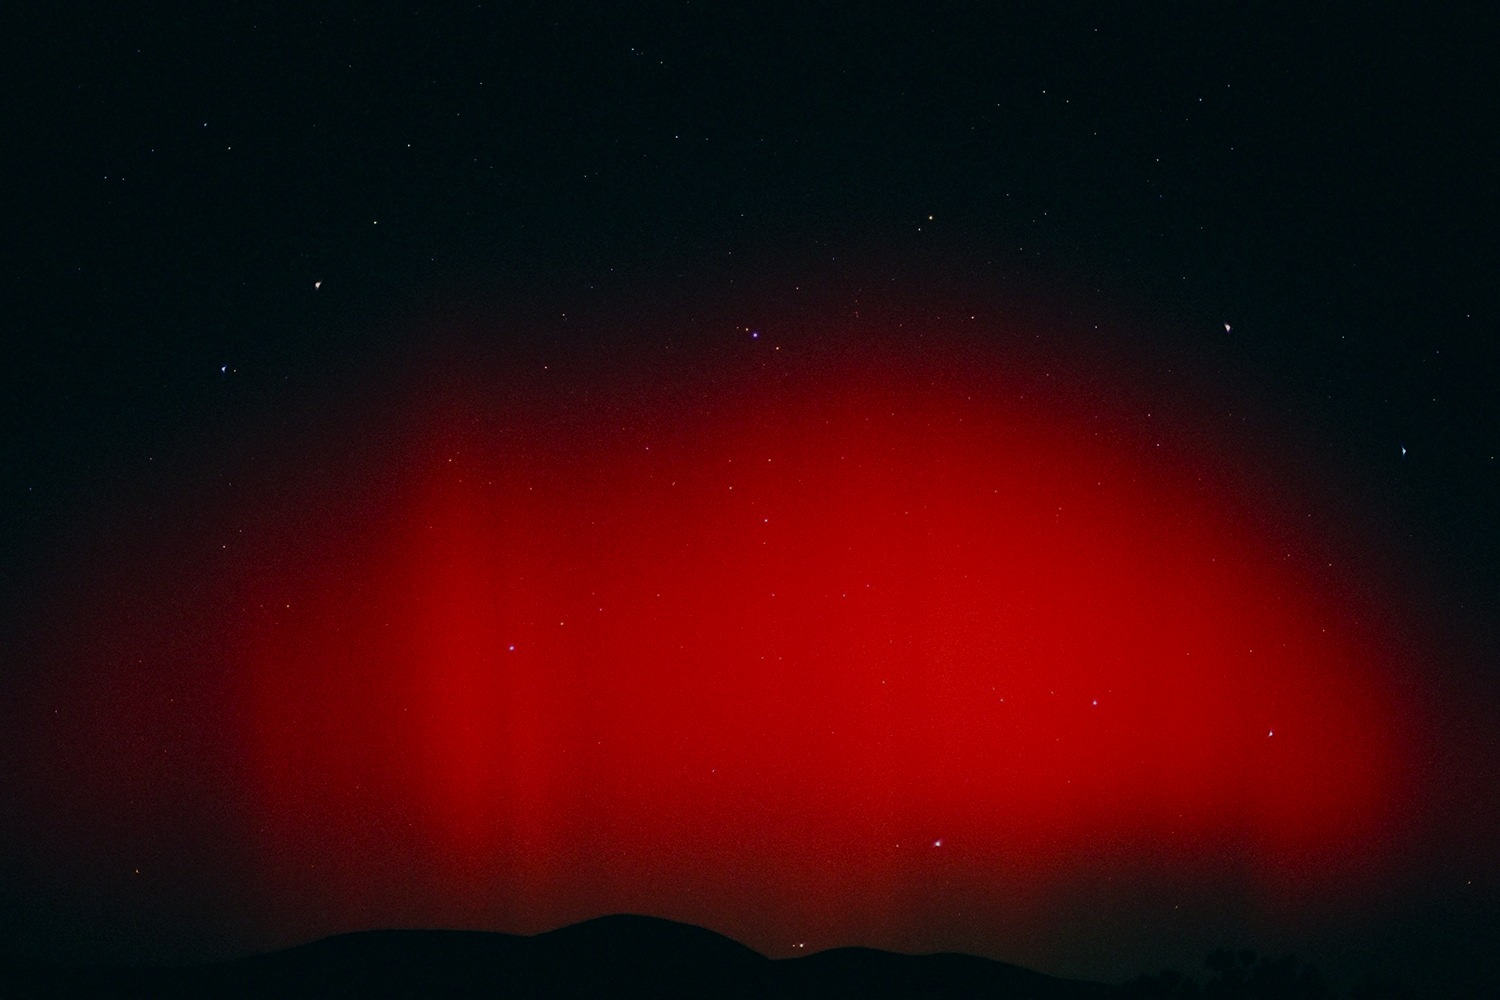 California Northern Lights: Red Aurora on October 29, 2003